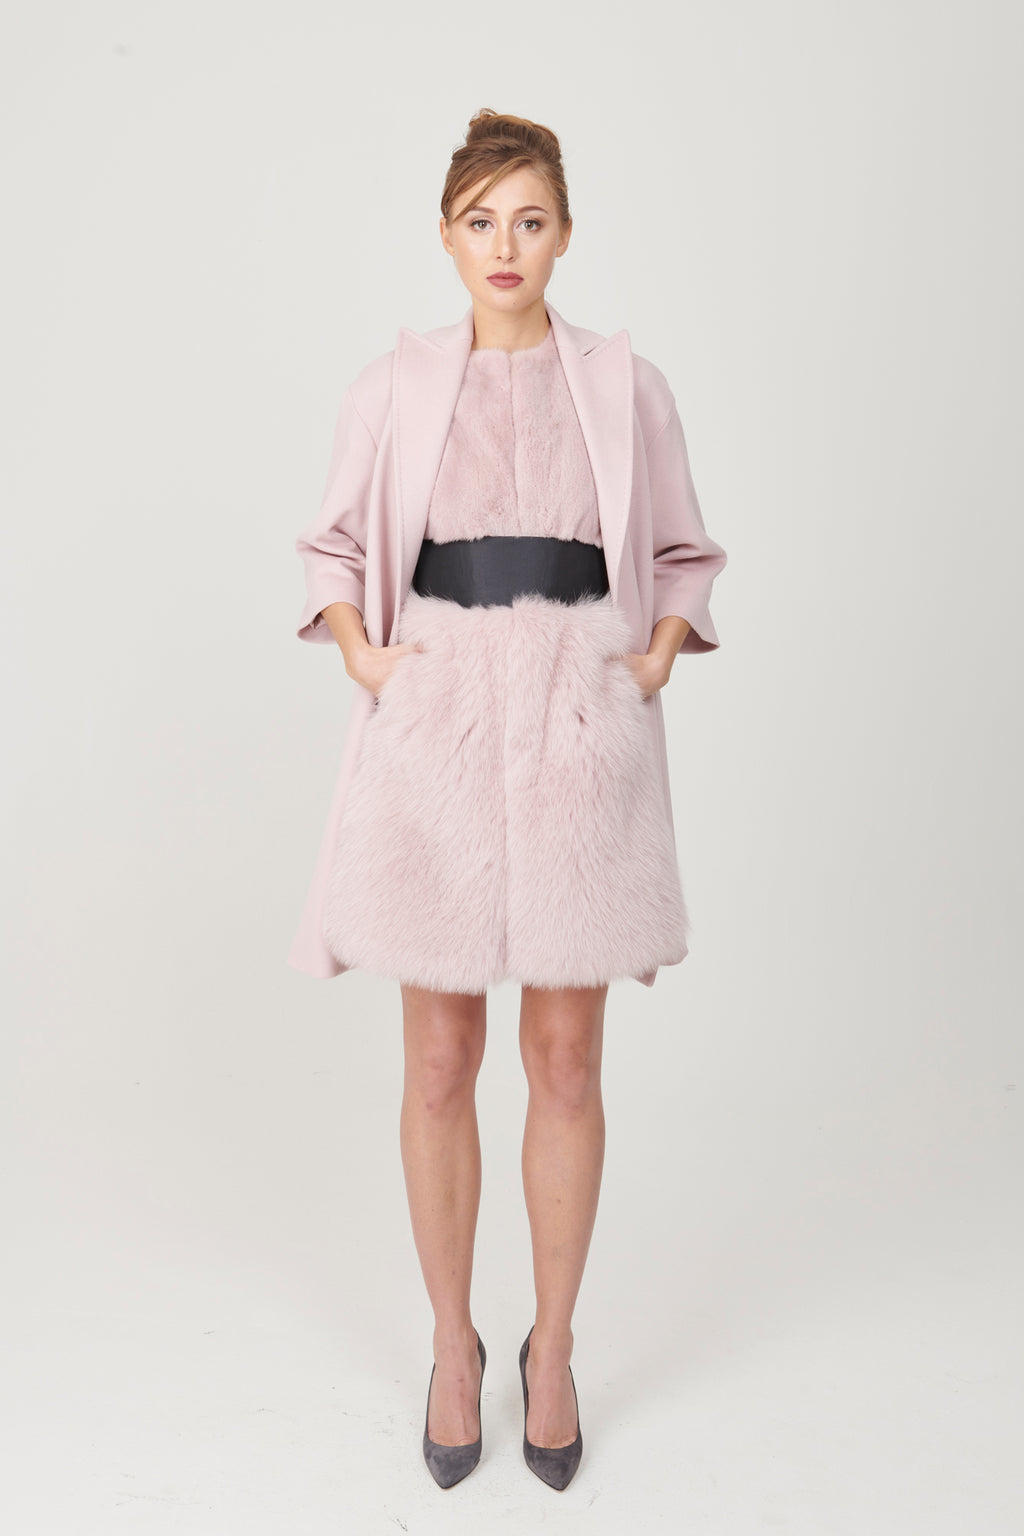 3 / 4 Sleeve Coat with Belt - My Graphiti